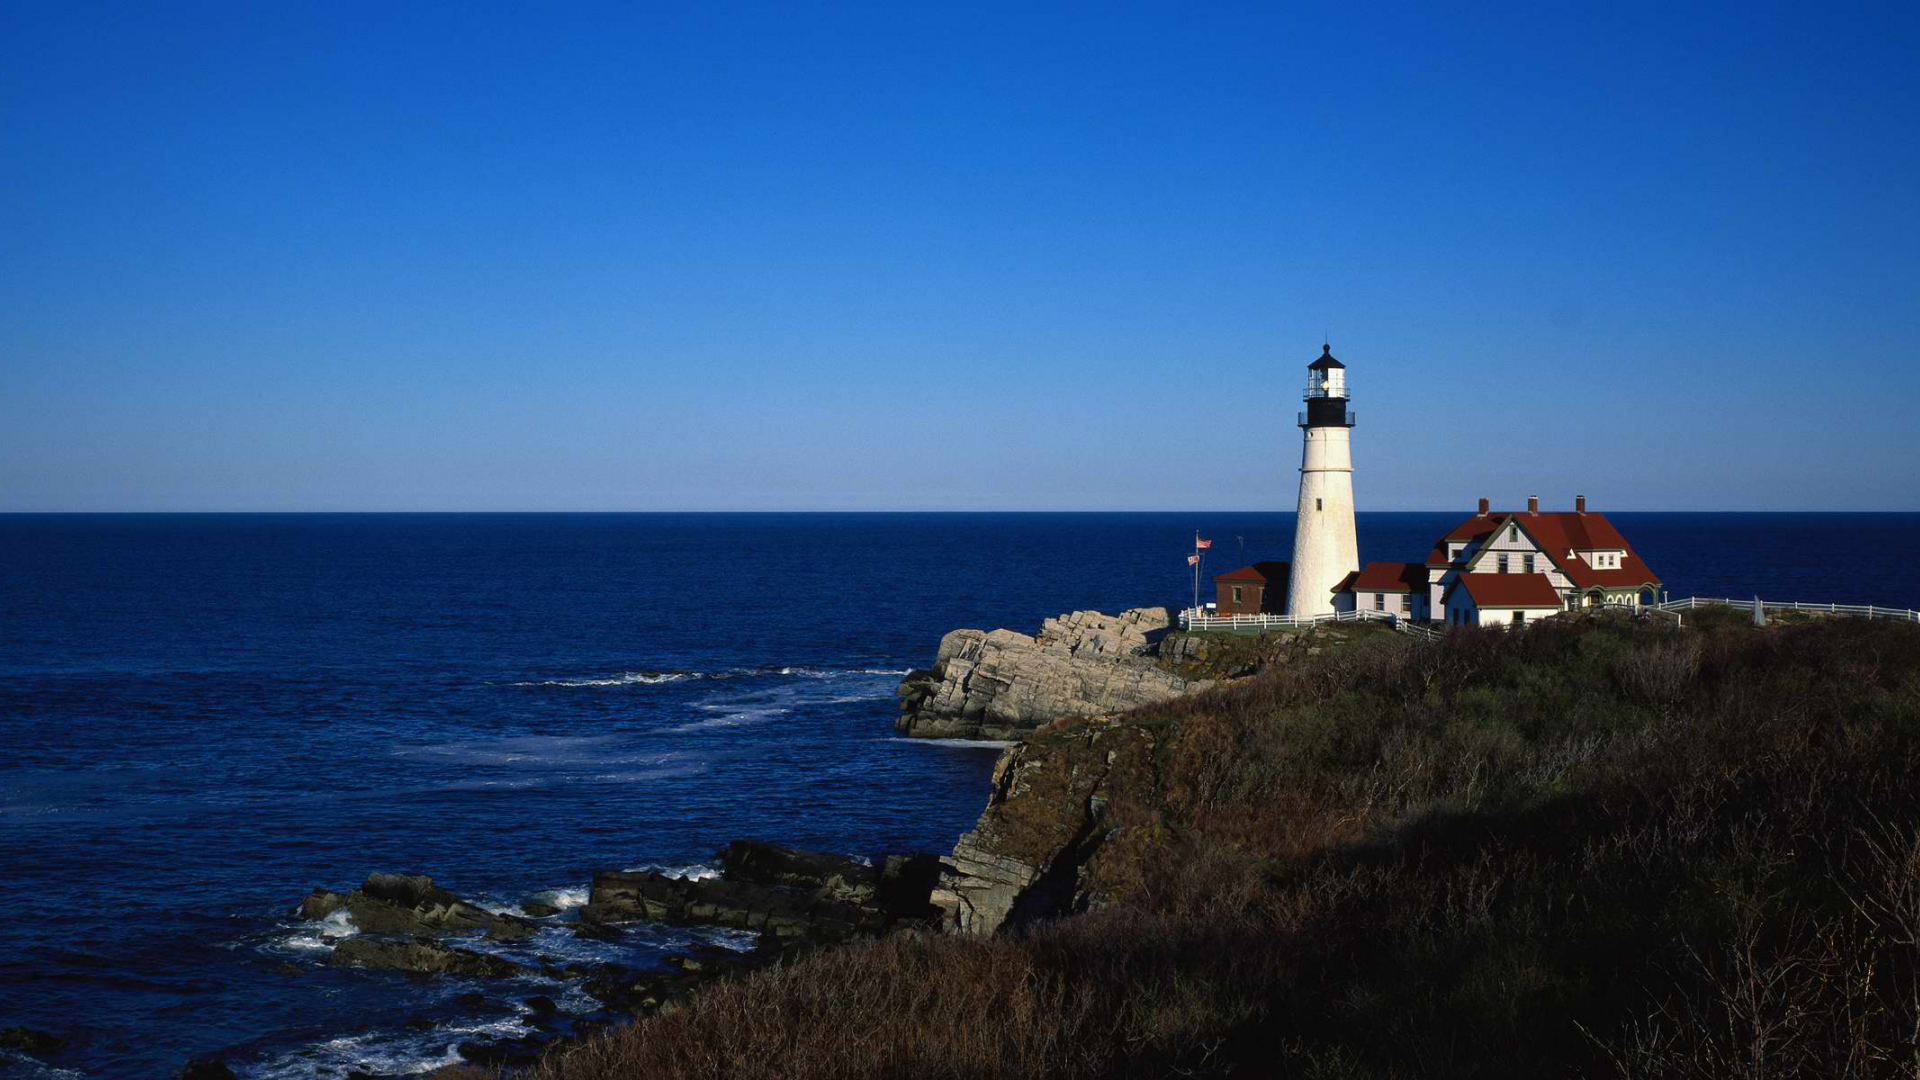 Free Download Lighthouse Desktop Hd Walls Find Wallpapers Images, Photos, Reviews